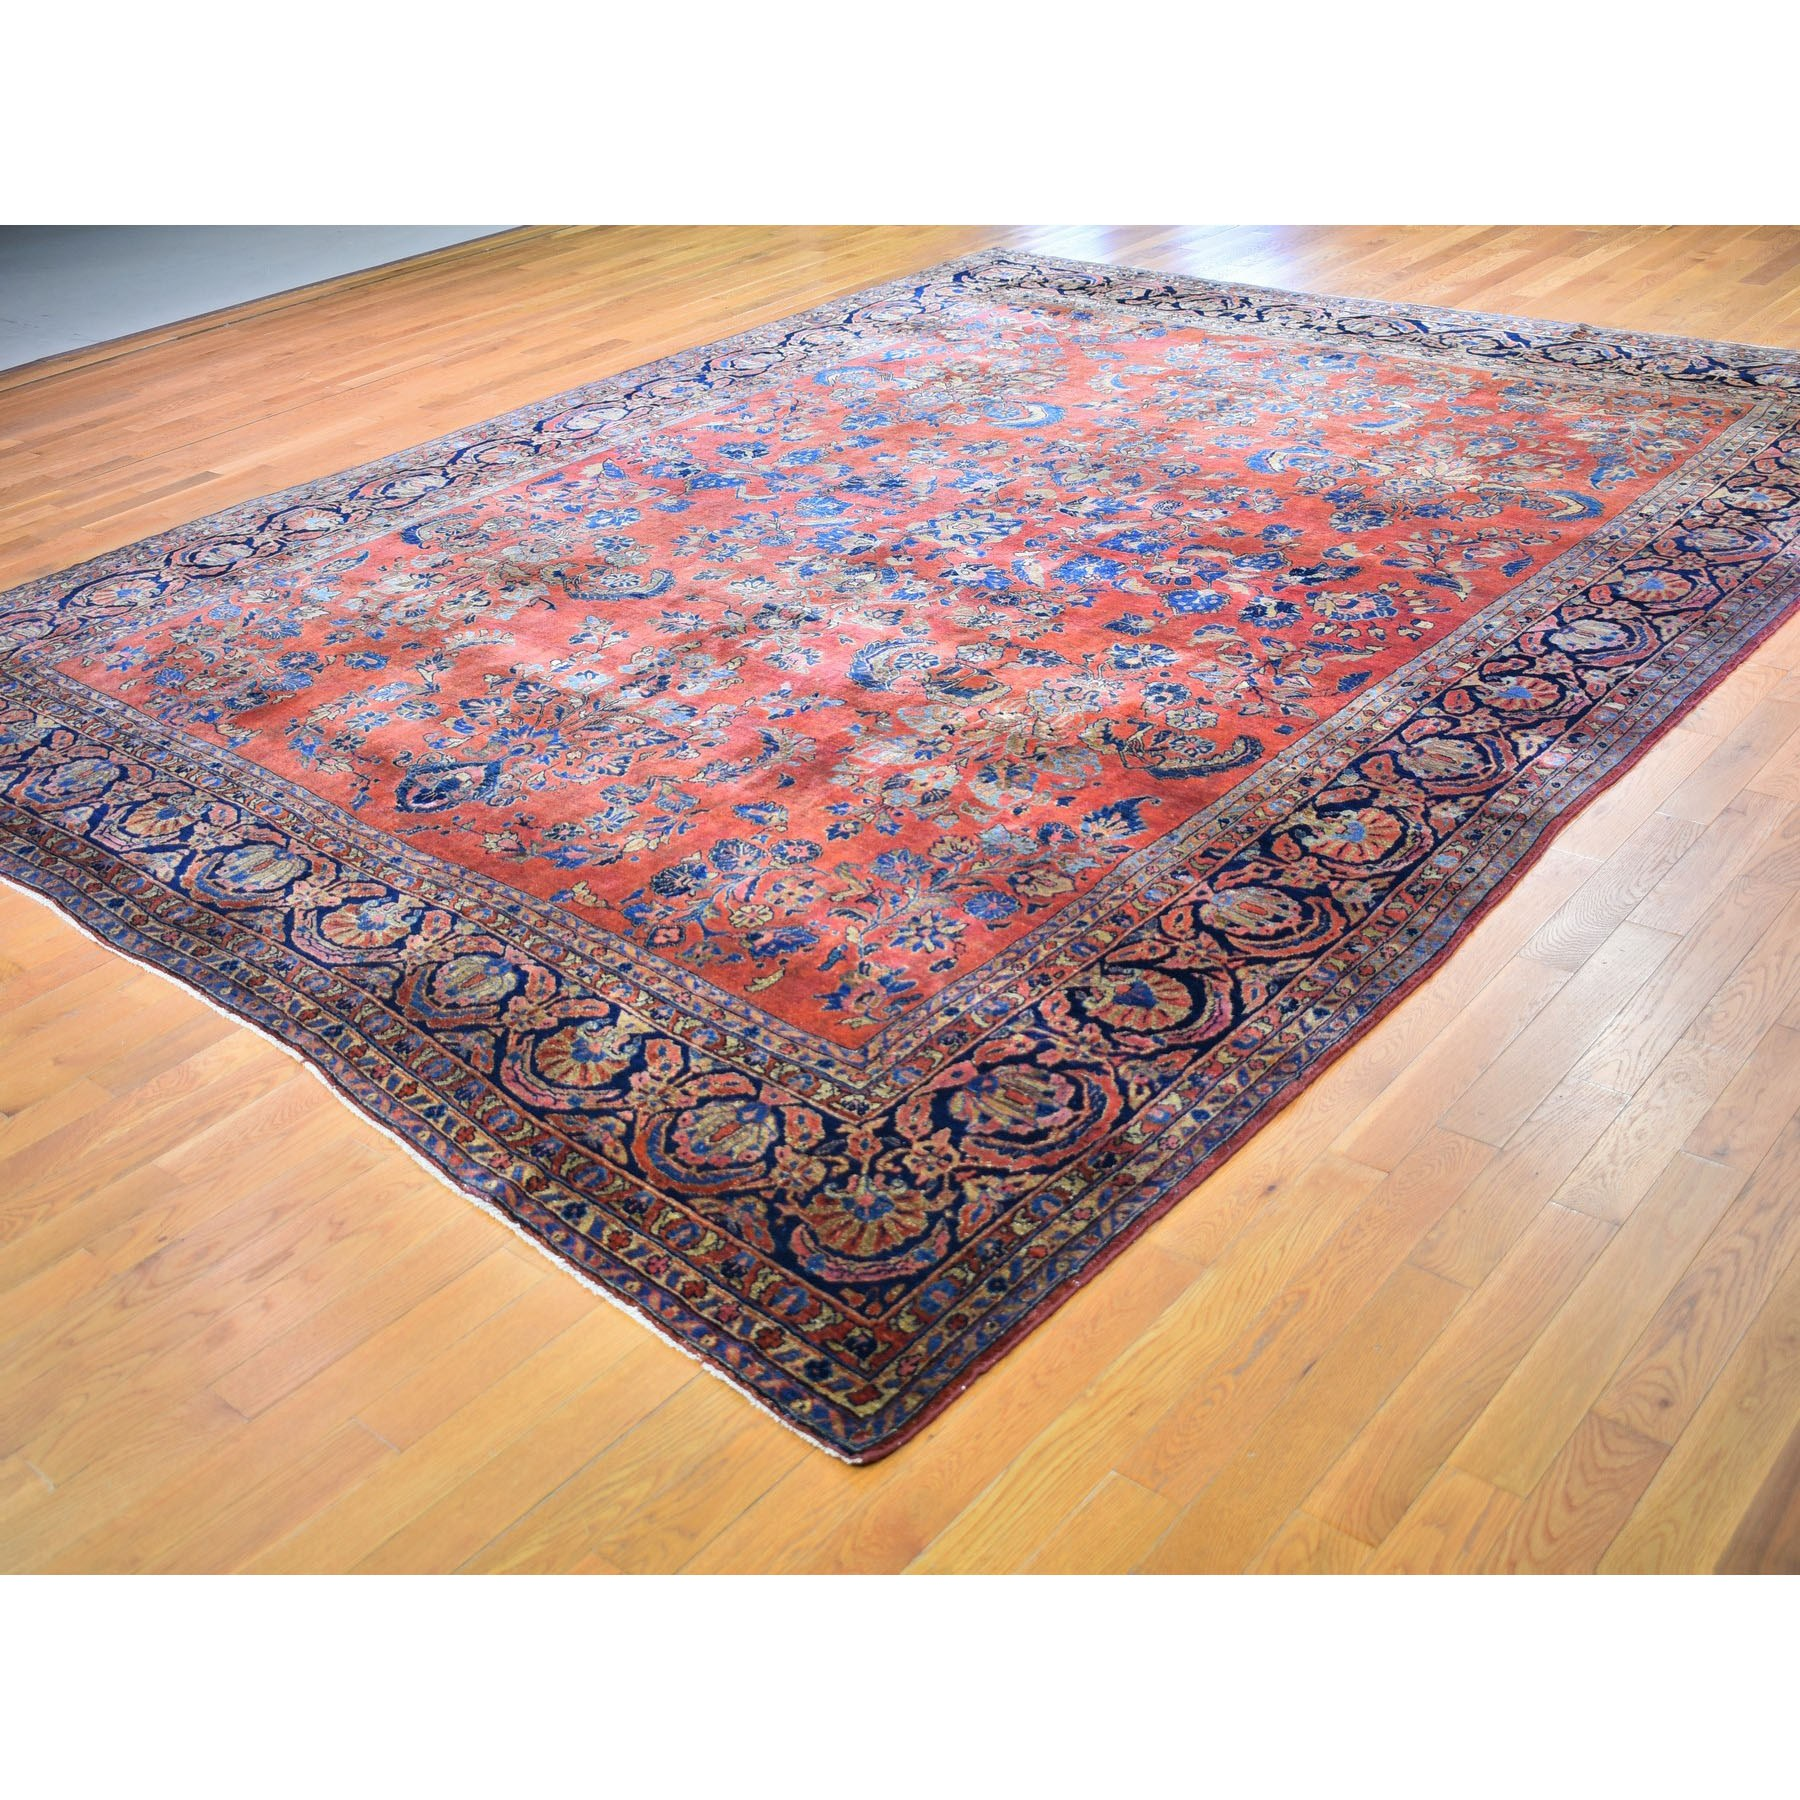 10-6 x13-  Red Antique Persian Sarouk Even Wear Clean And Soft Hand Knotted Oriental Rug